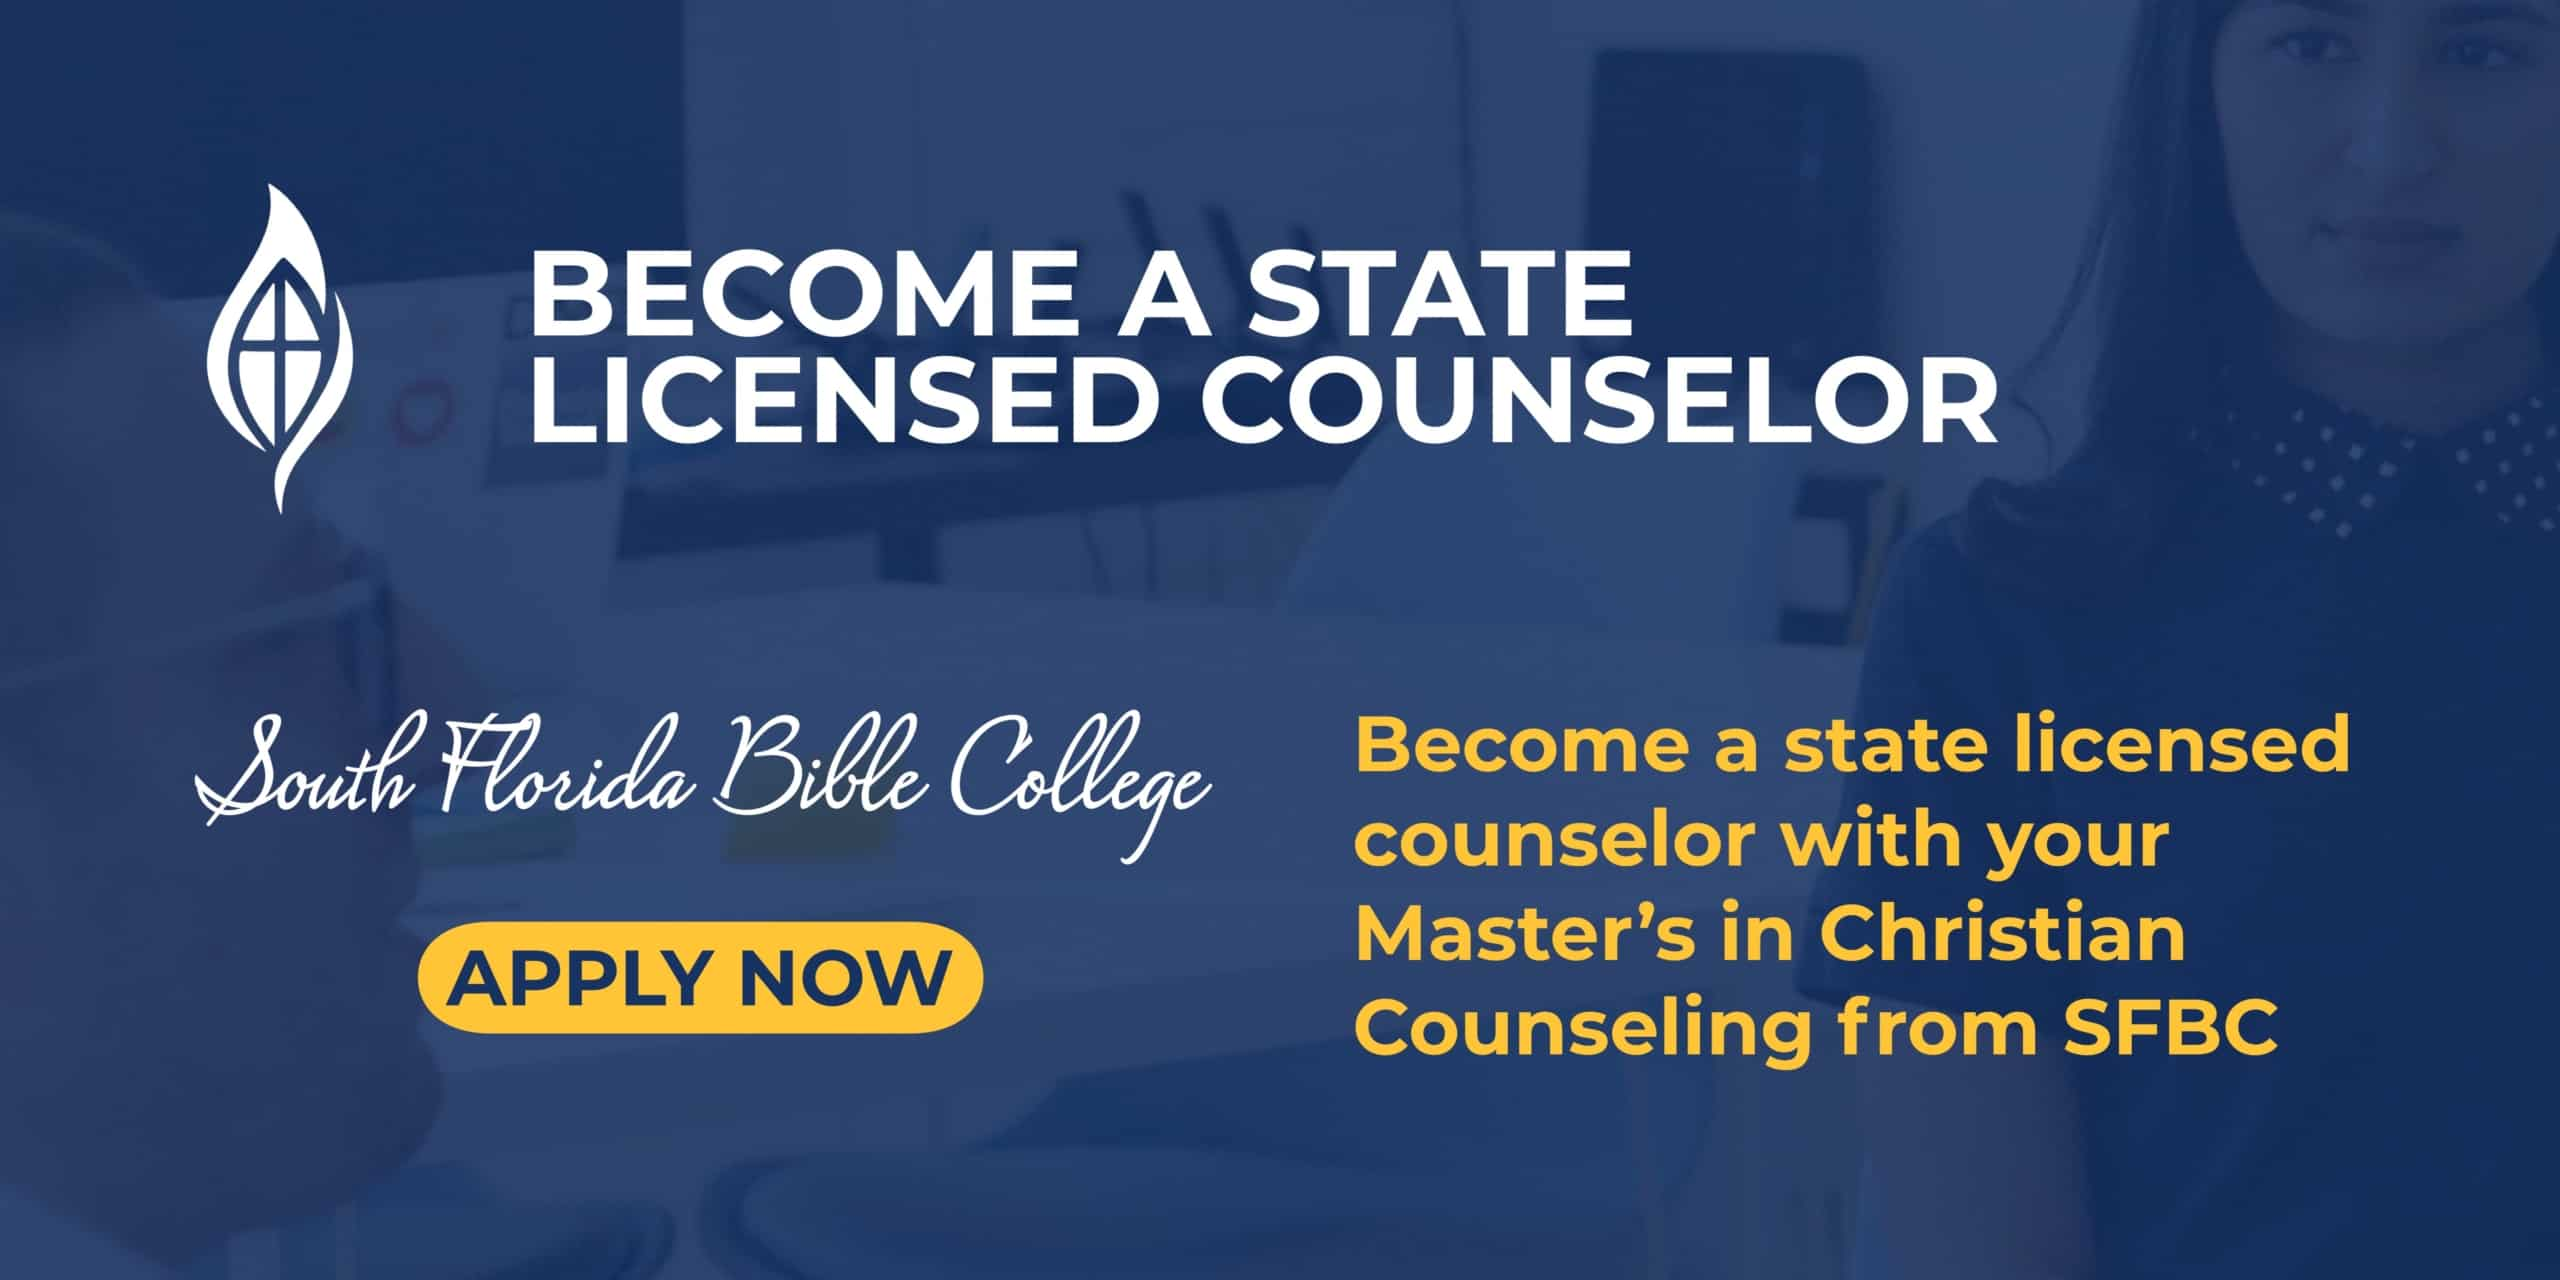 Qualify to become a state-licensed mental health counselor with your master's from South Florida Bible College